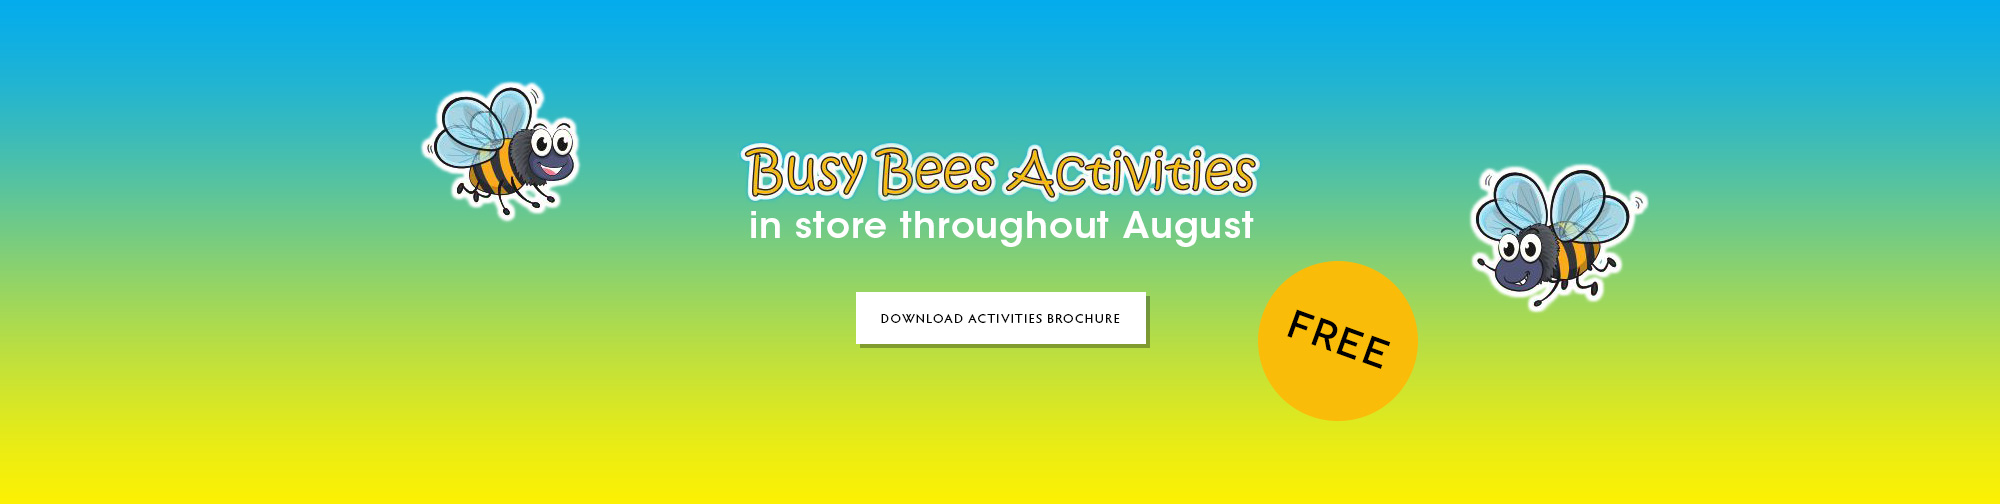 Busy Bees Activities – August 2019